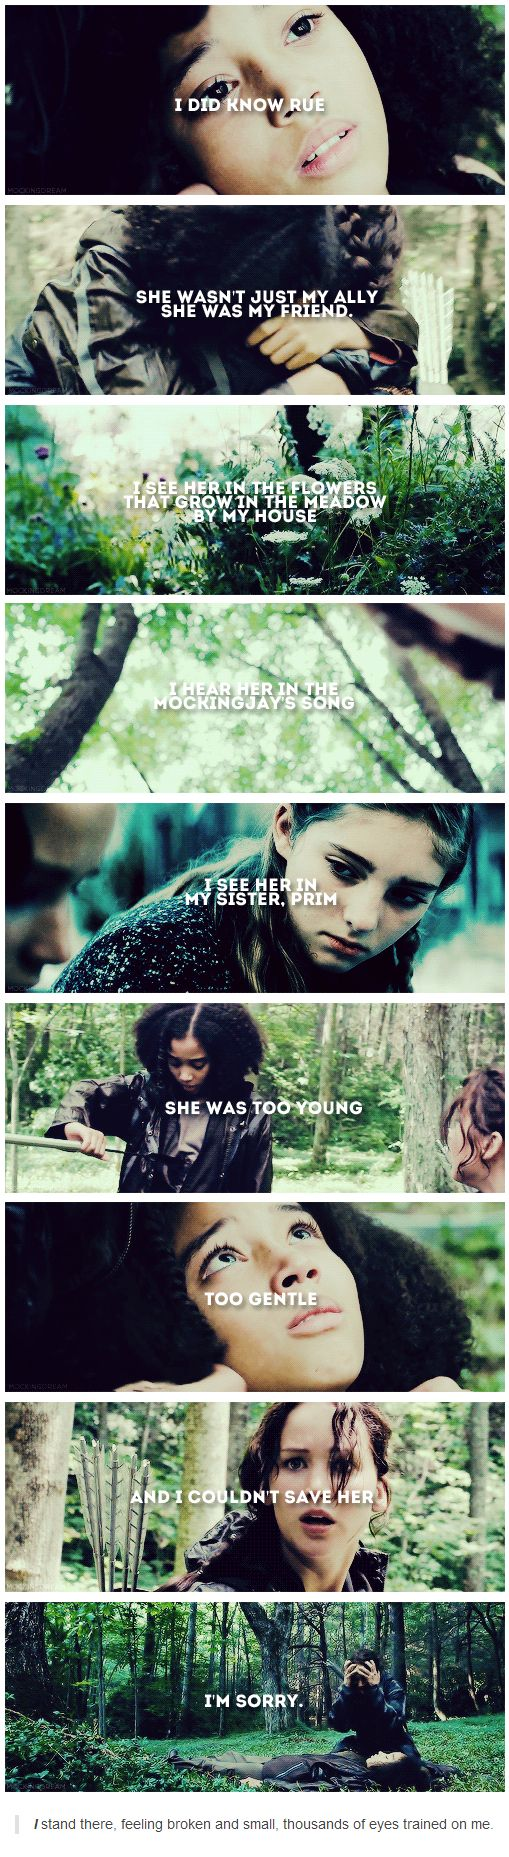 I did know Rue. She wasnt just my ally, she was my friend. I see her in the flowers that grow in the meadow by my house. I hear her in the Mockingjays song. I see her in my sister, Prim. She was too young, too gentle. And I couldnt save her. Im sorry. I stand there, feeling broken and small, thousands of eyes trained on me.